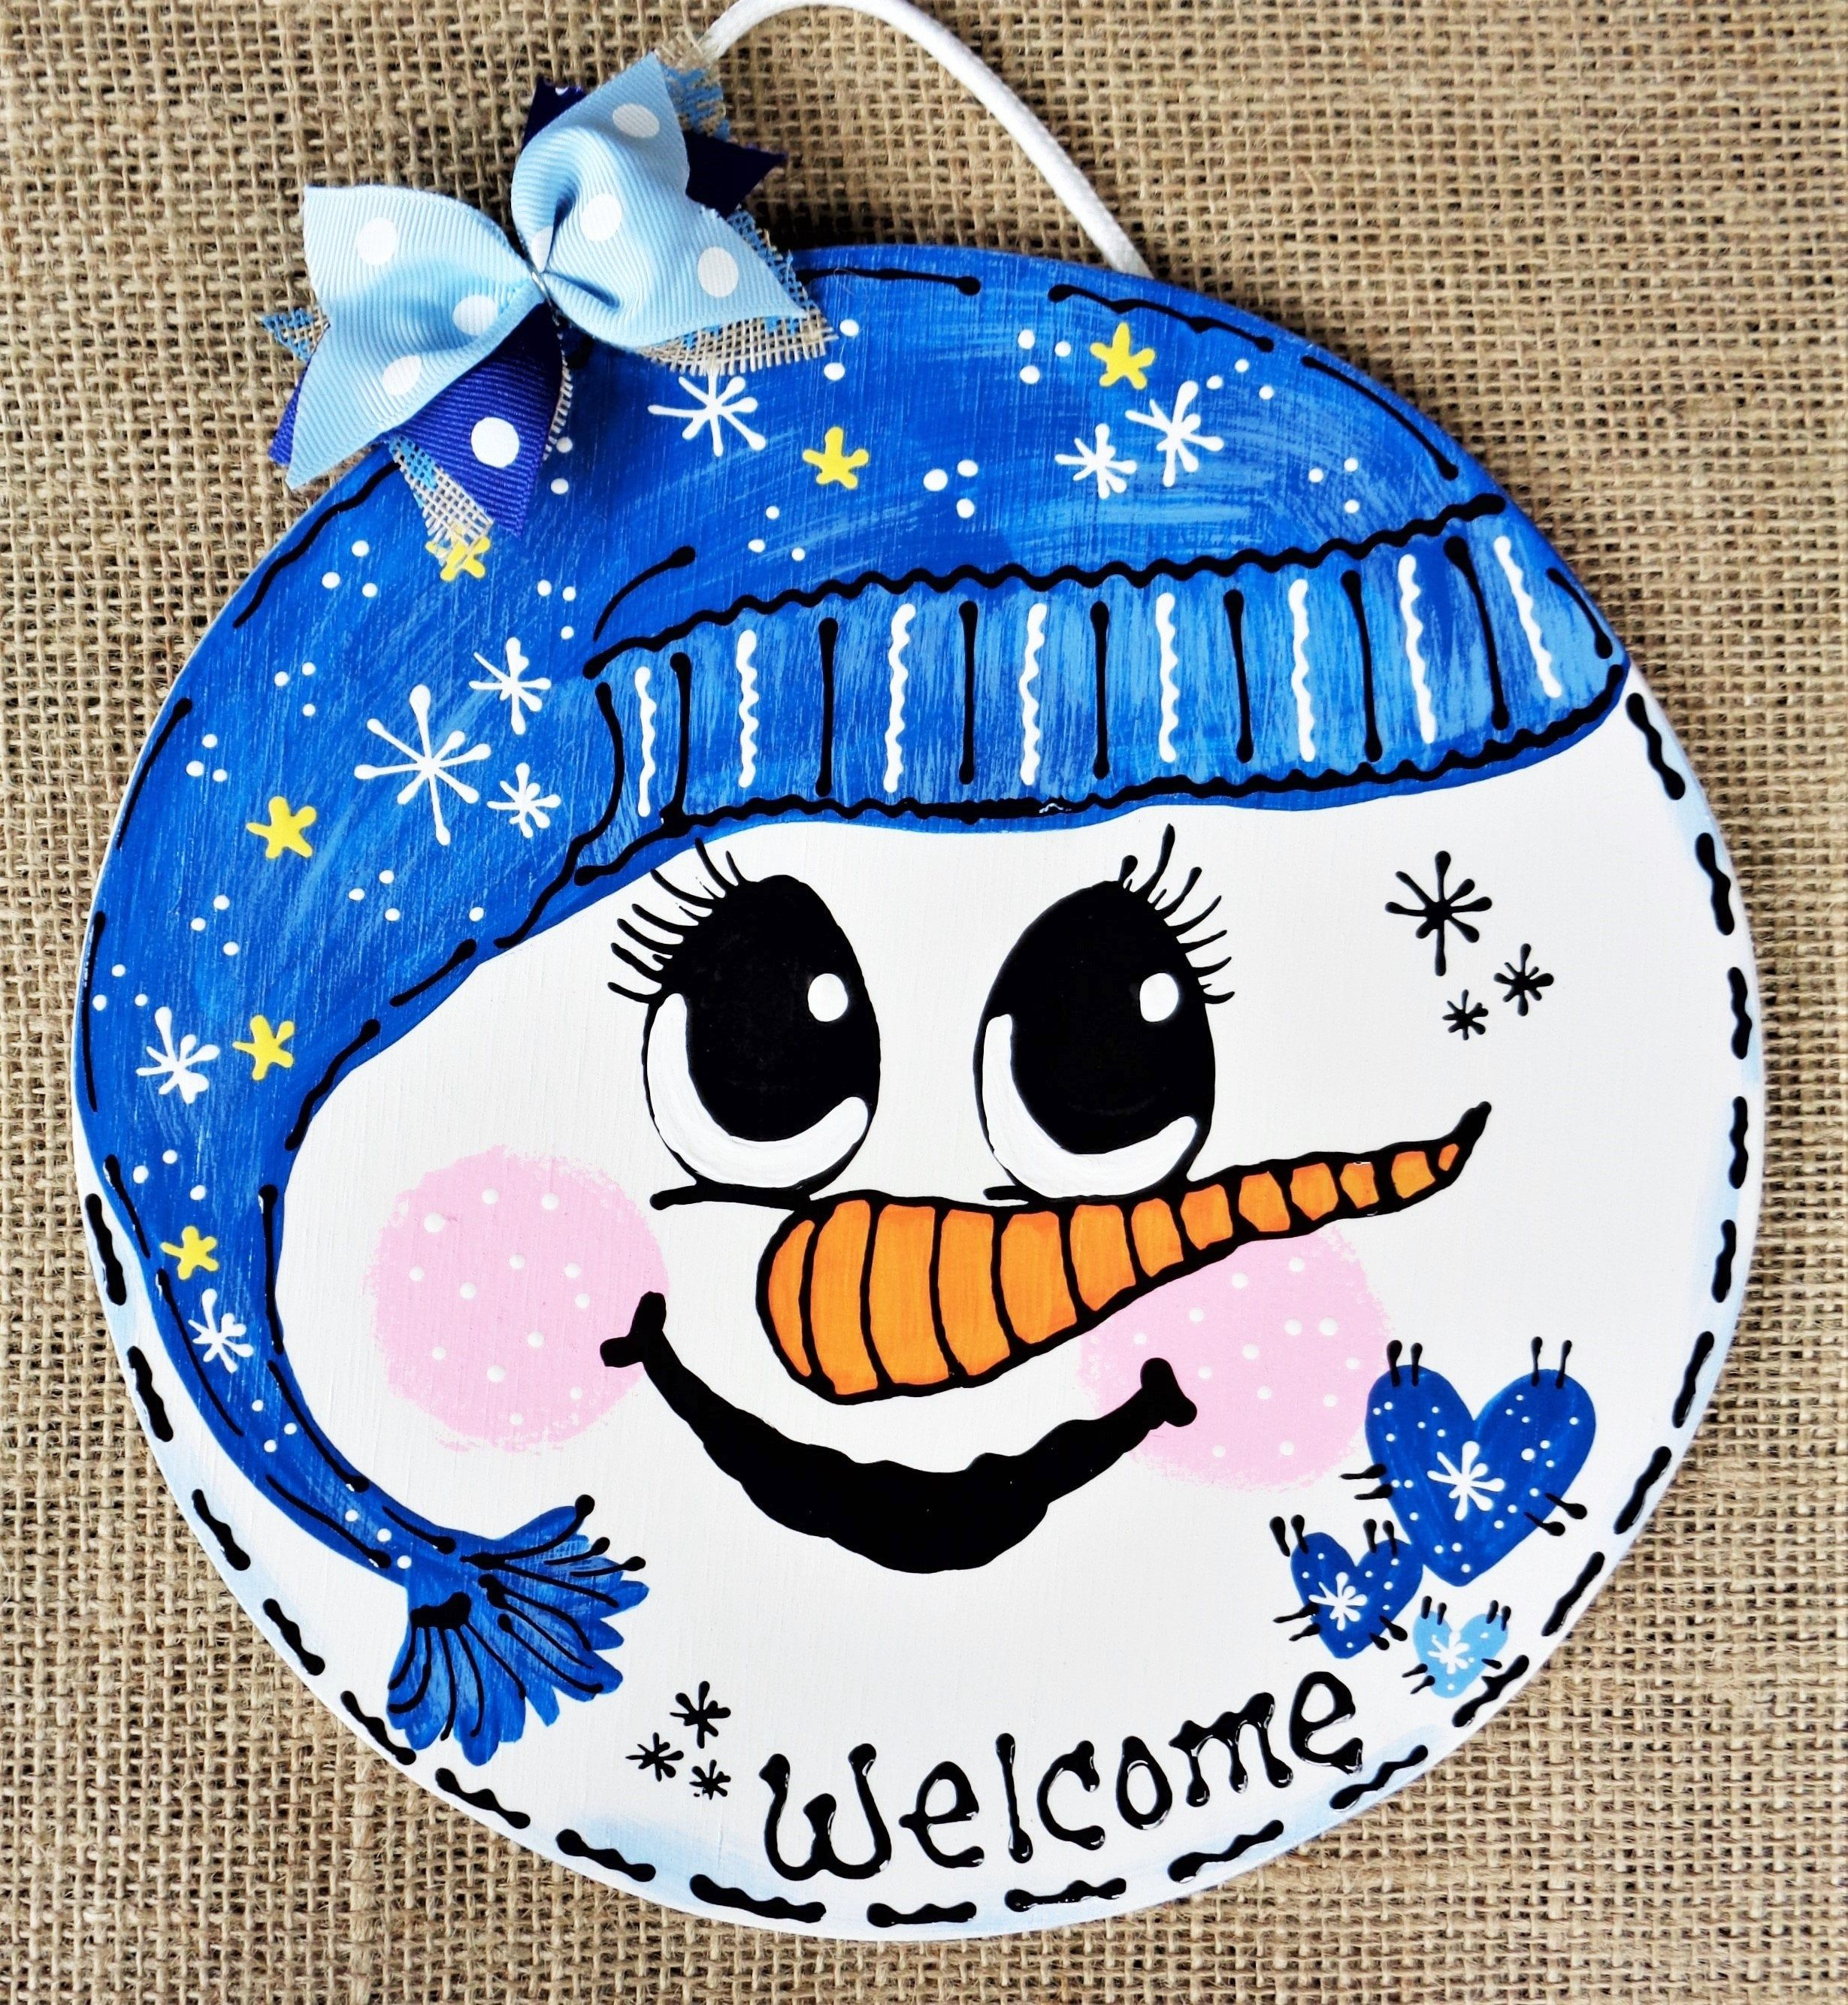 Snowman Face Circle Sign Wall Art Door Winter Christmas Plaque Wreath Welcome Decor Handcrafted Hand Painte Country Wood Crafts Snowman Faces Christmas Plaques